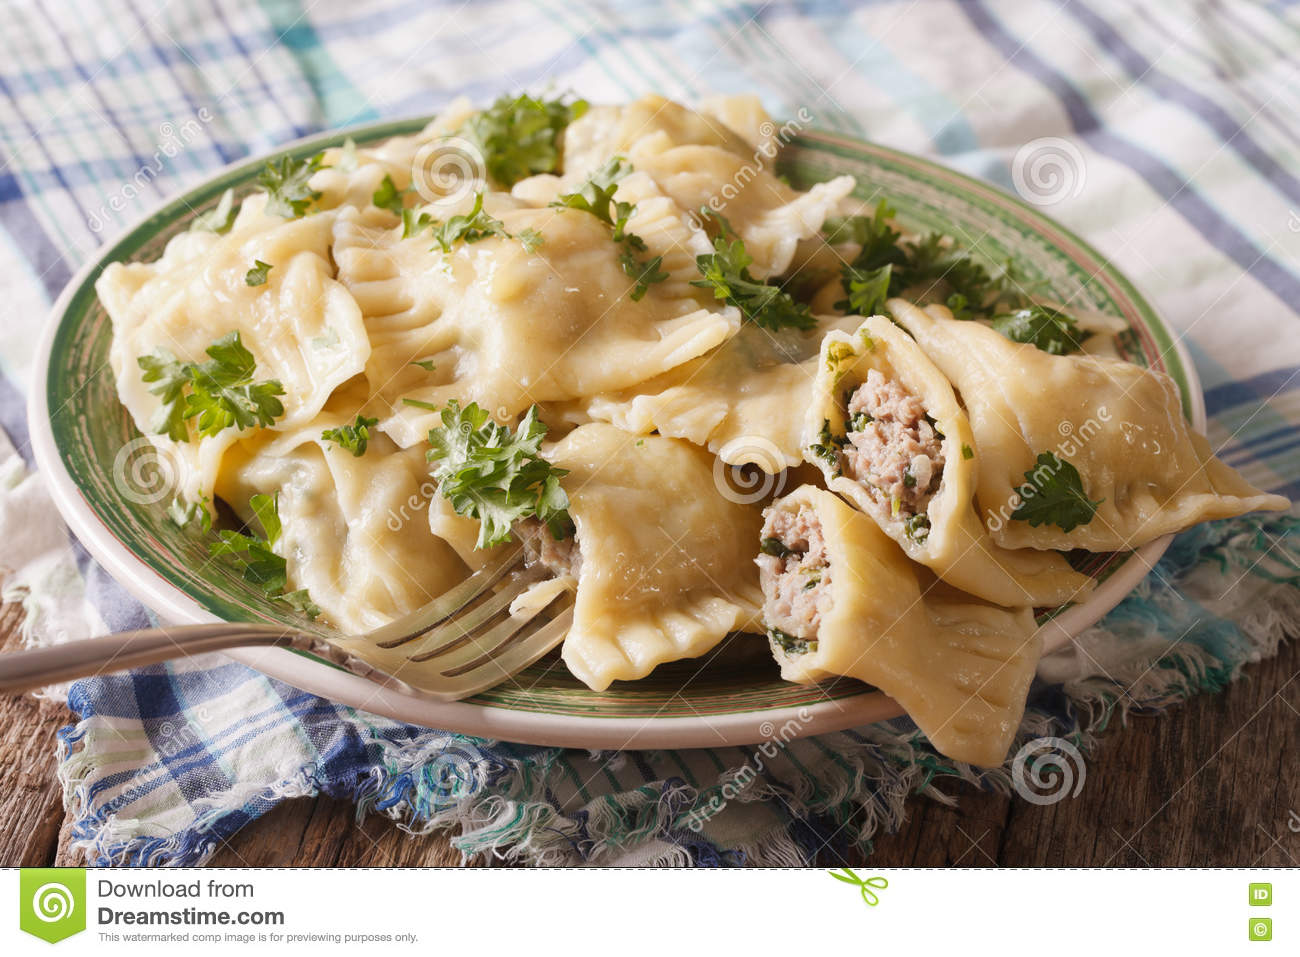 German Ravioli Maultaschen With Spinach And Meat Close Up. Horiz.